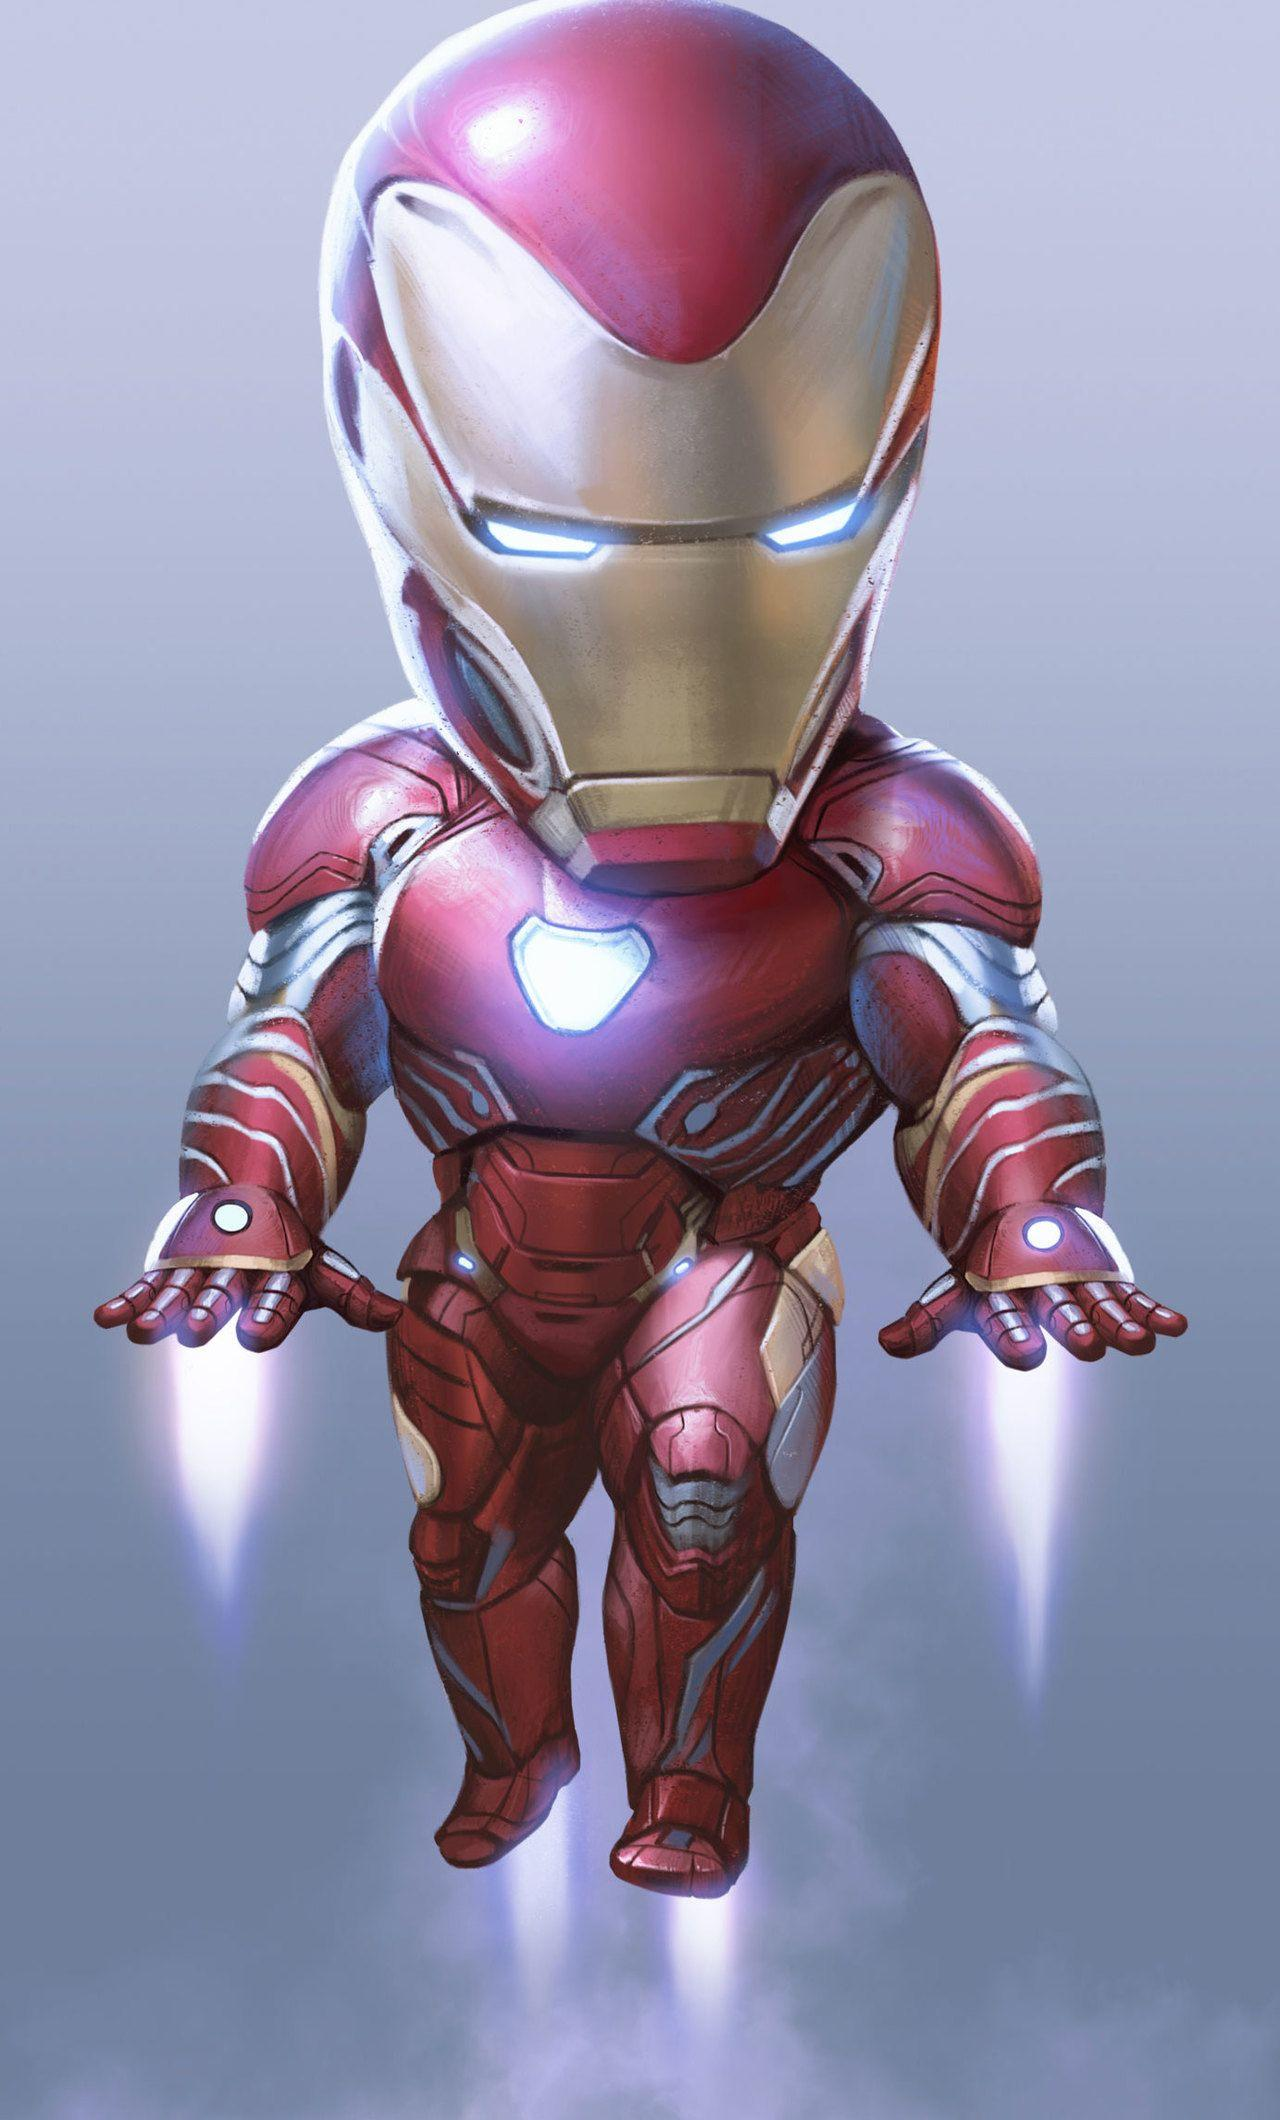 Infinity Iron Man Wallpapers - Wallpaper Cave